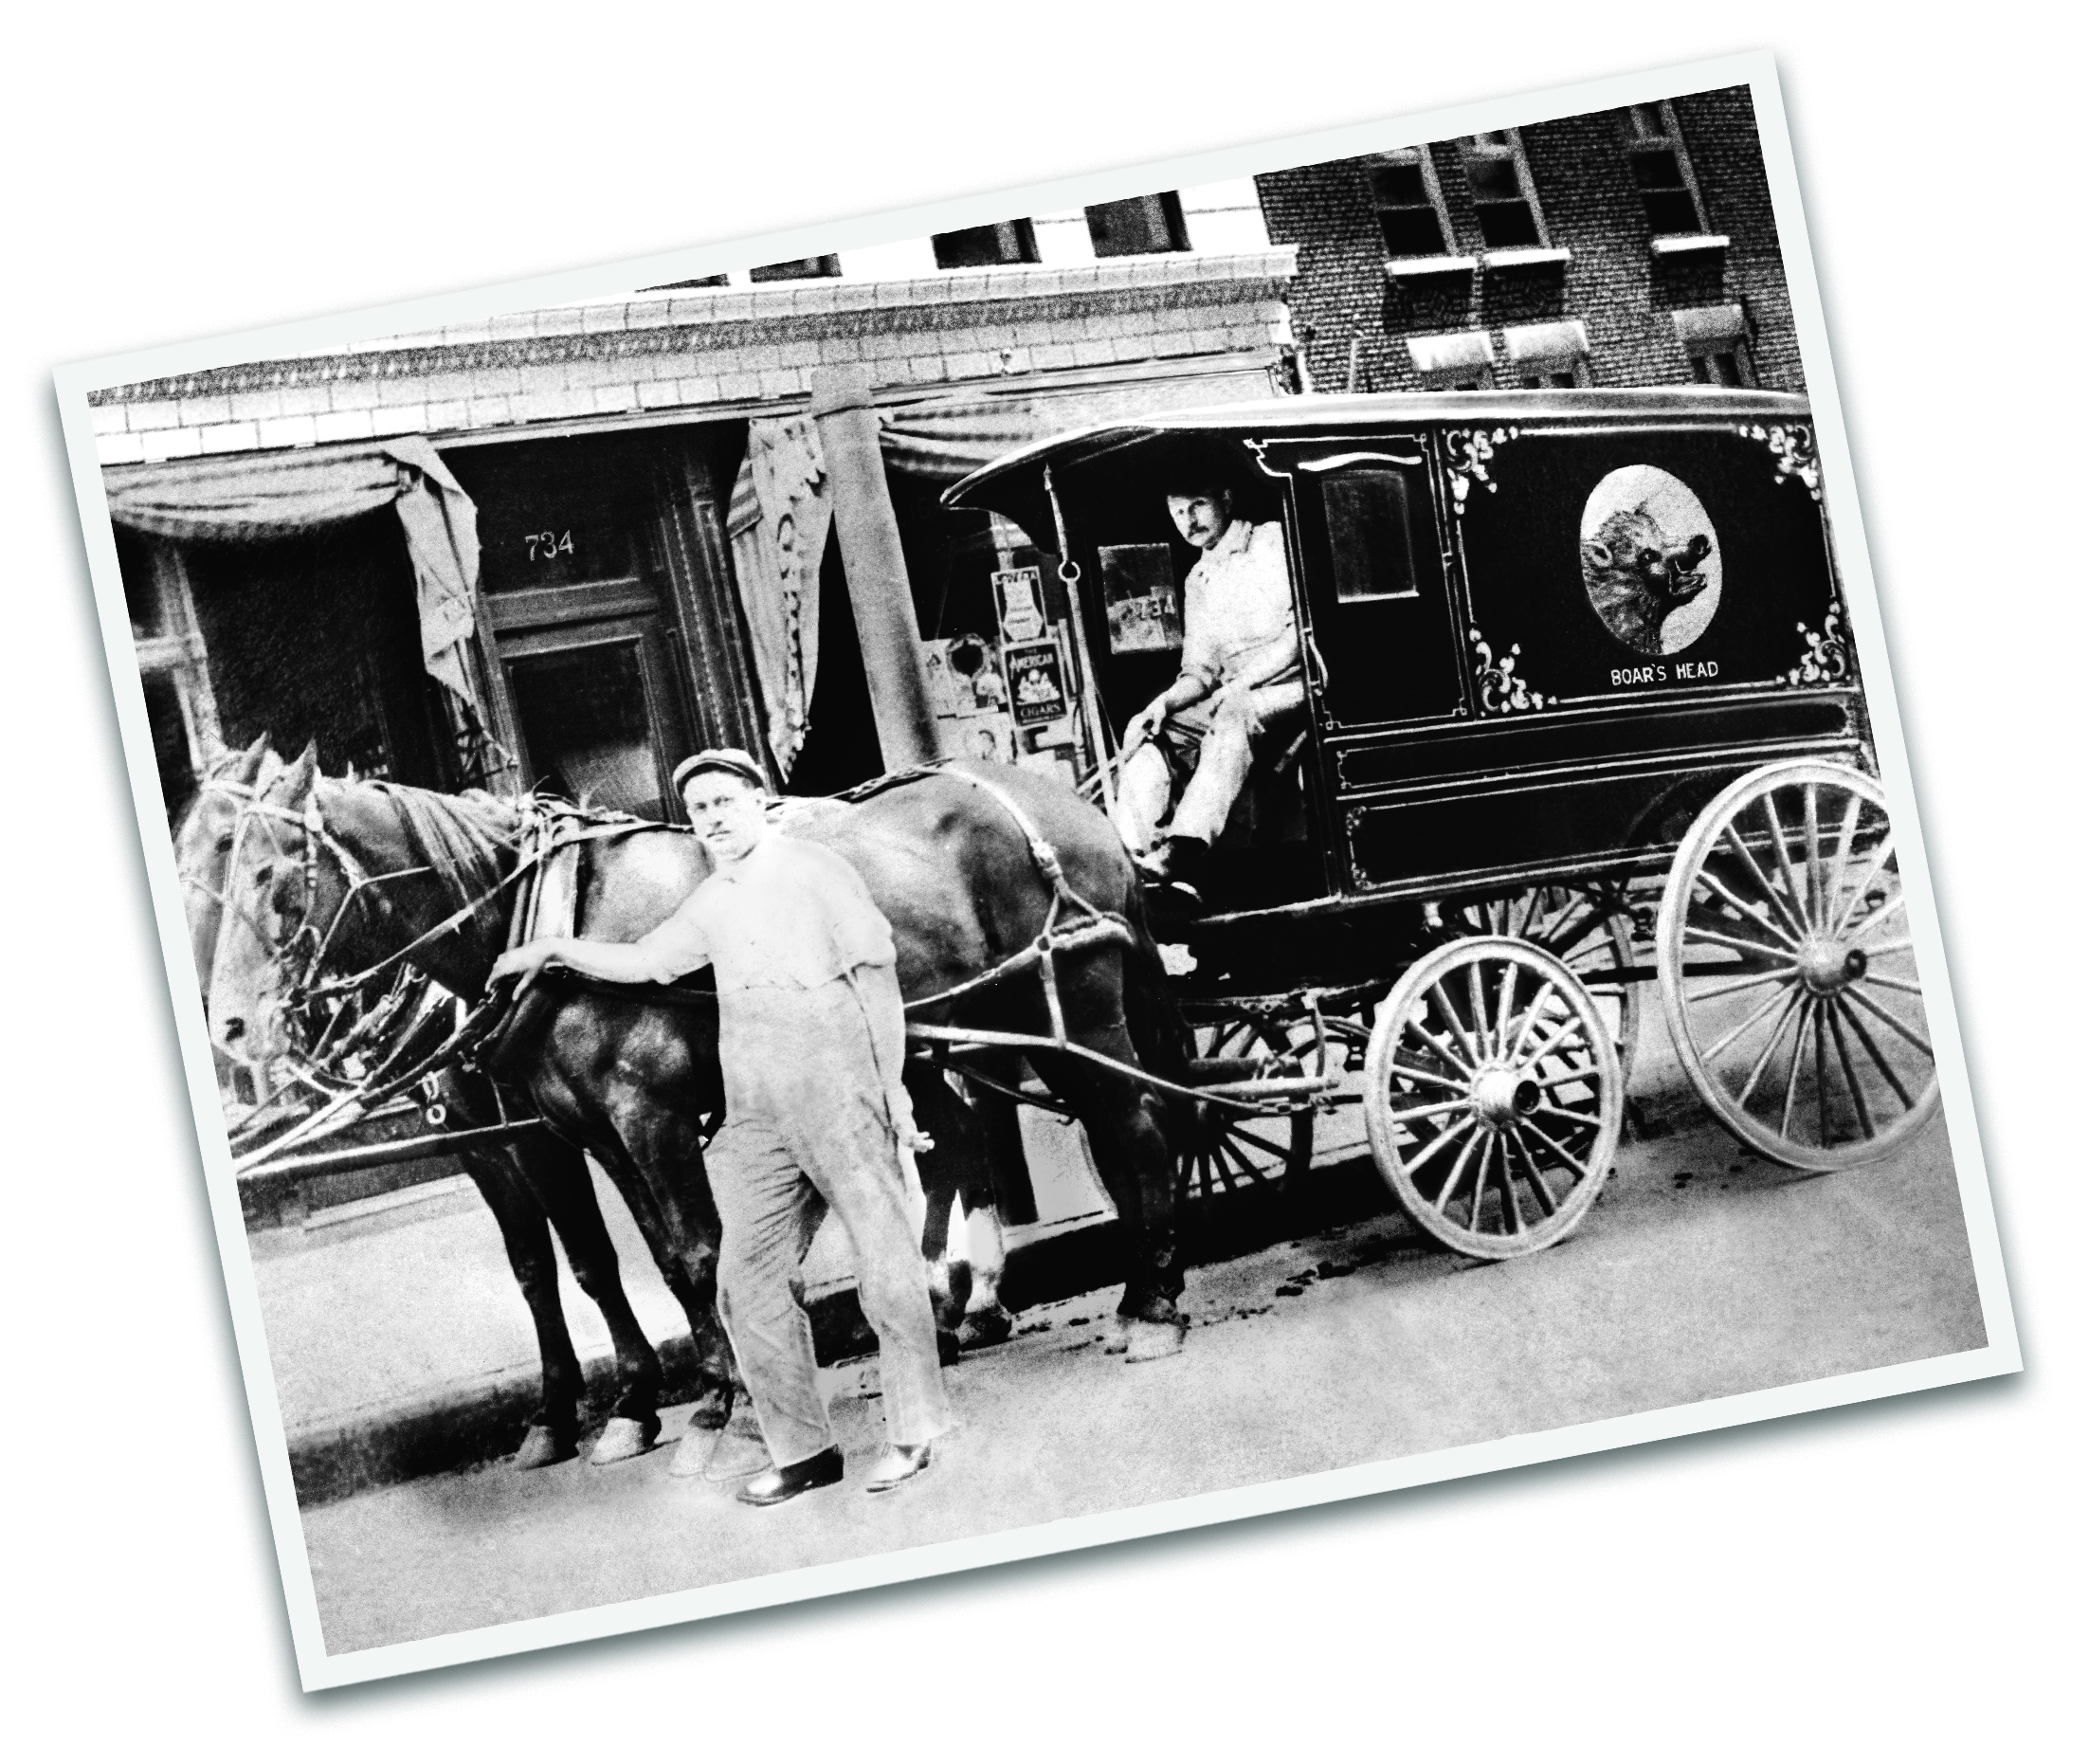 81108_DIGITAL_Andronicos_2452_IMAGES_Horse_Buggy.jpg